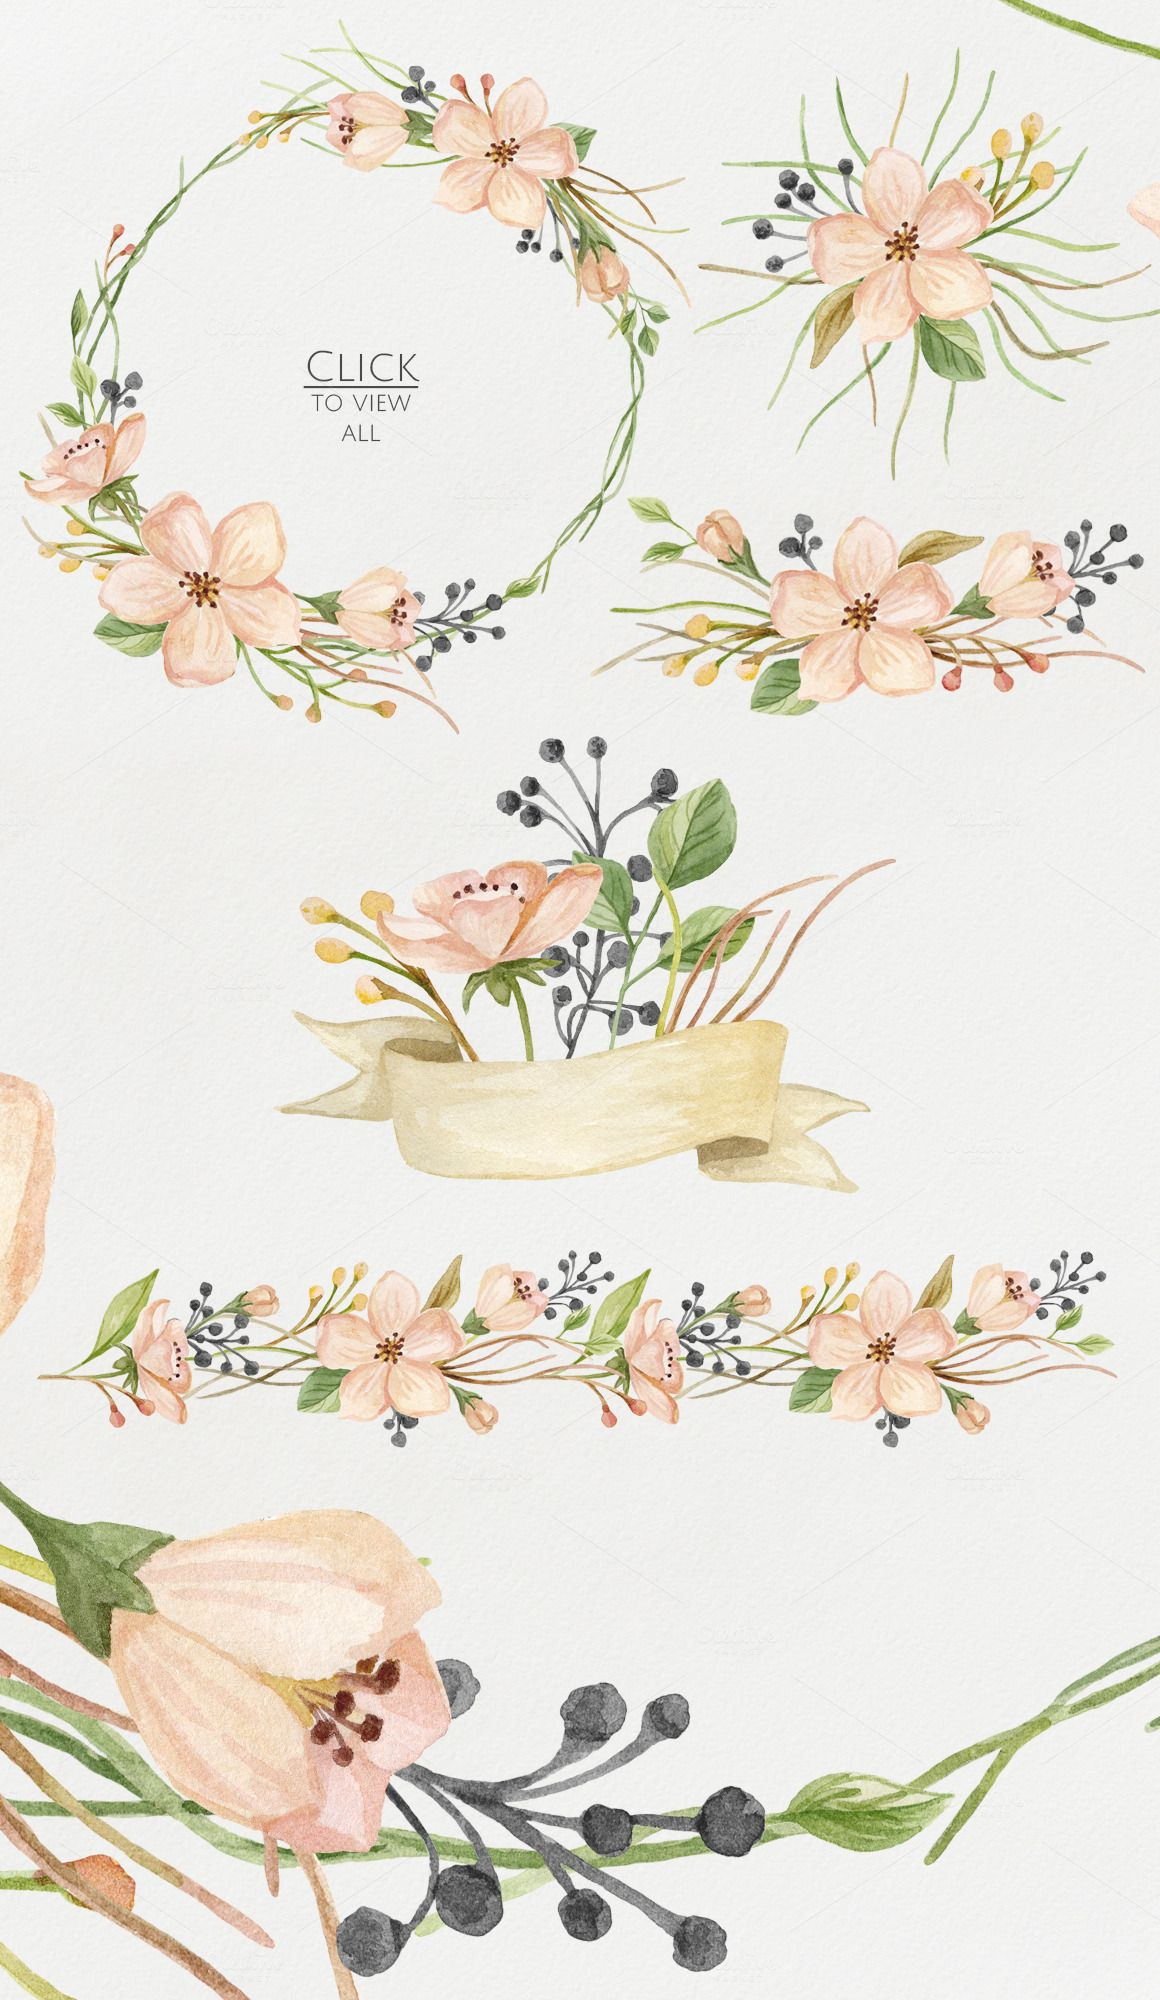 Watercolor flowers png clipart illustrations on creative market - Watercolor Blooming Spring Set By Nataliva On Creative Market